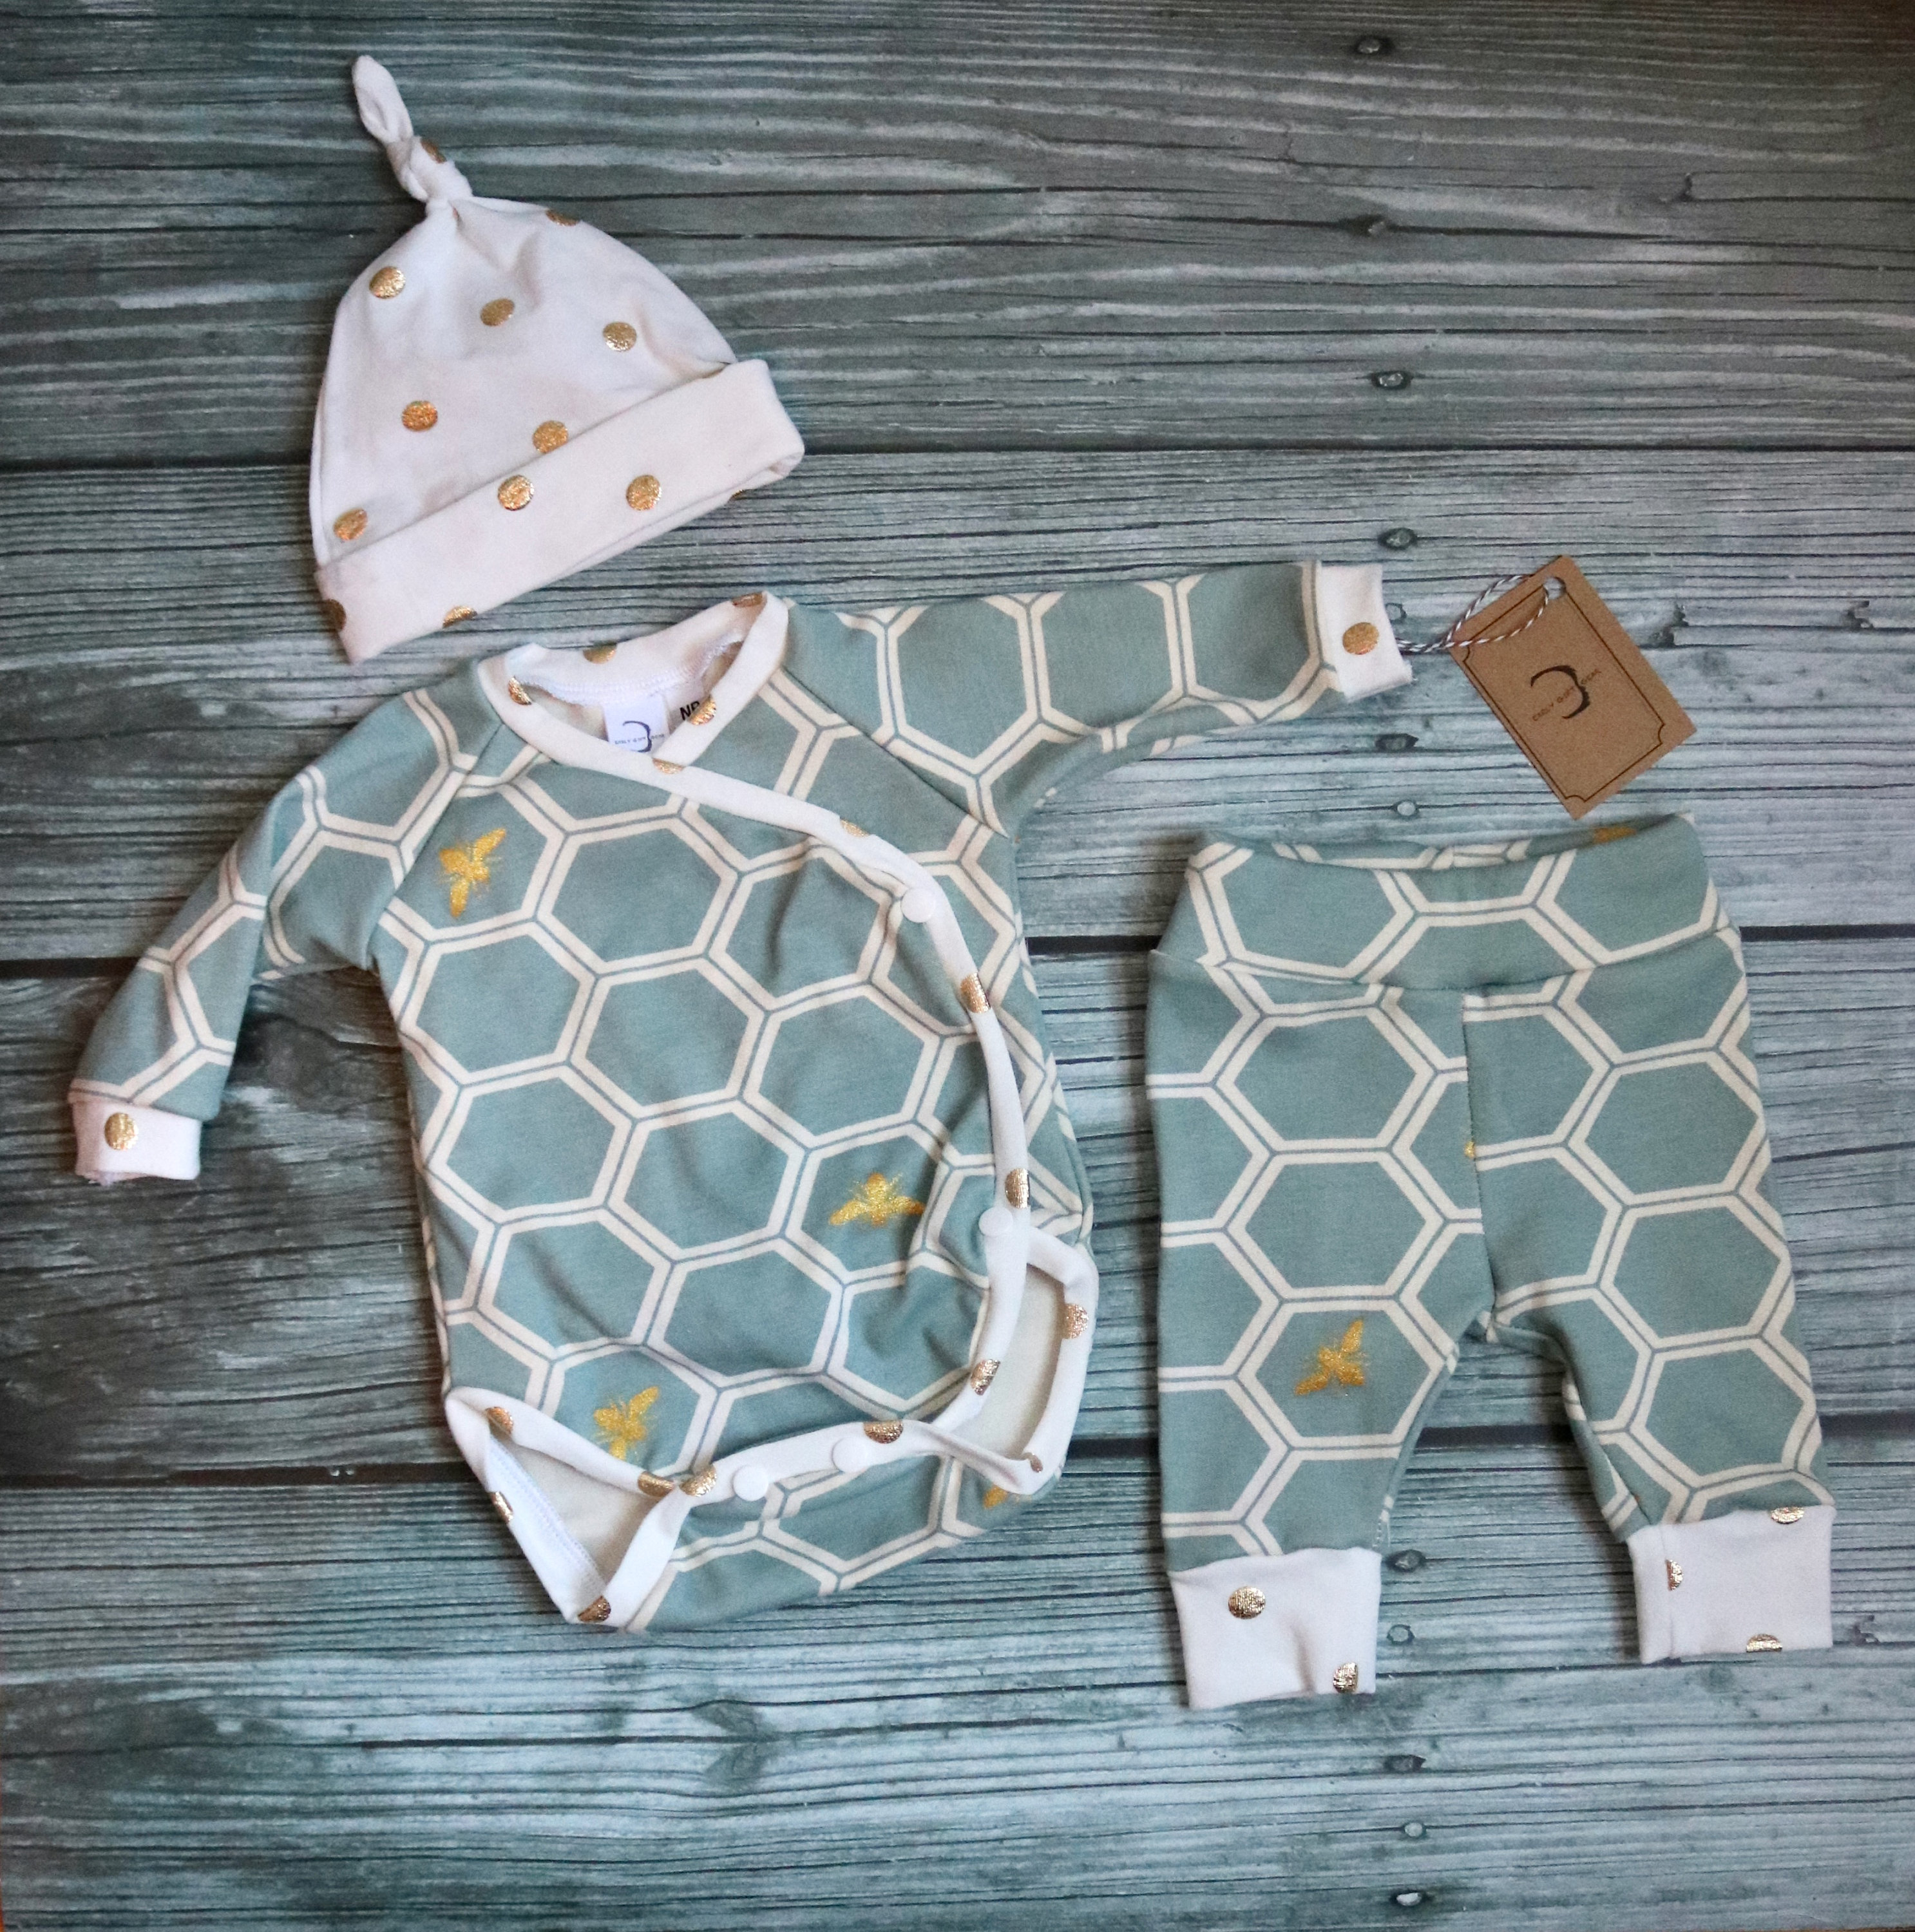 59233923a3d41 LIMITED EDITION Organic Cotton Baby Clothes | Honey bee | Unisex | Preemie  & Newborn Coming Home Outfit | Kimono set | Baby Shower Gift